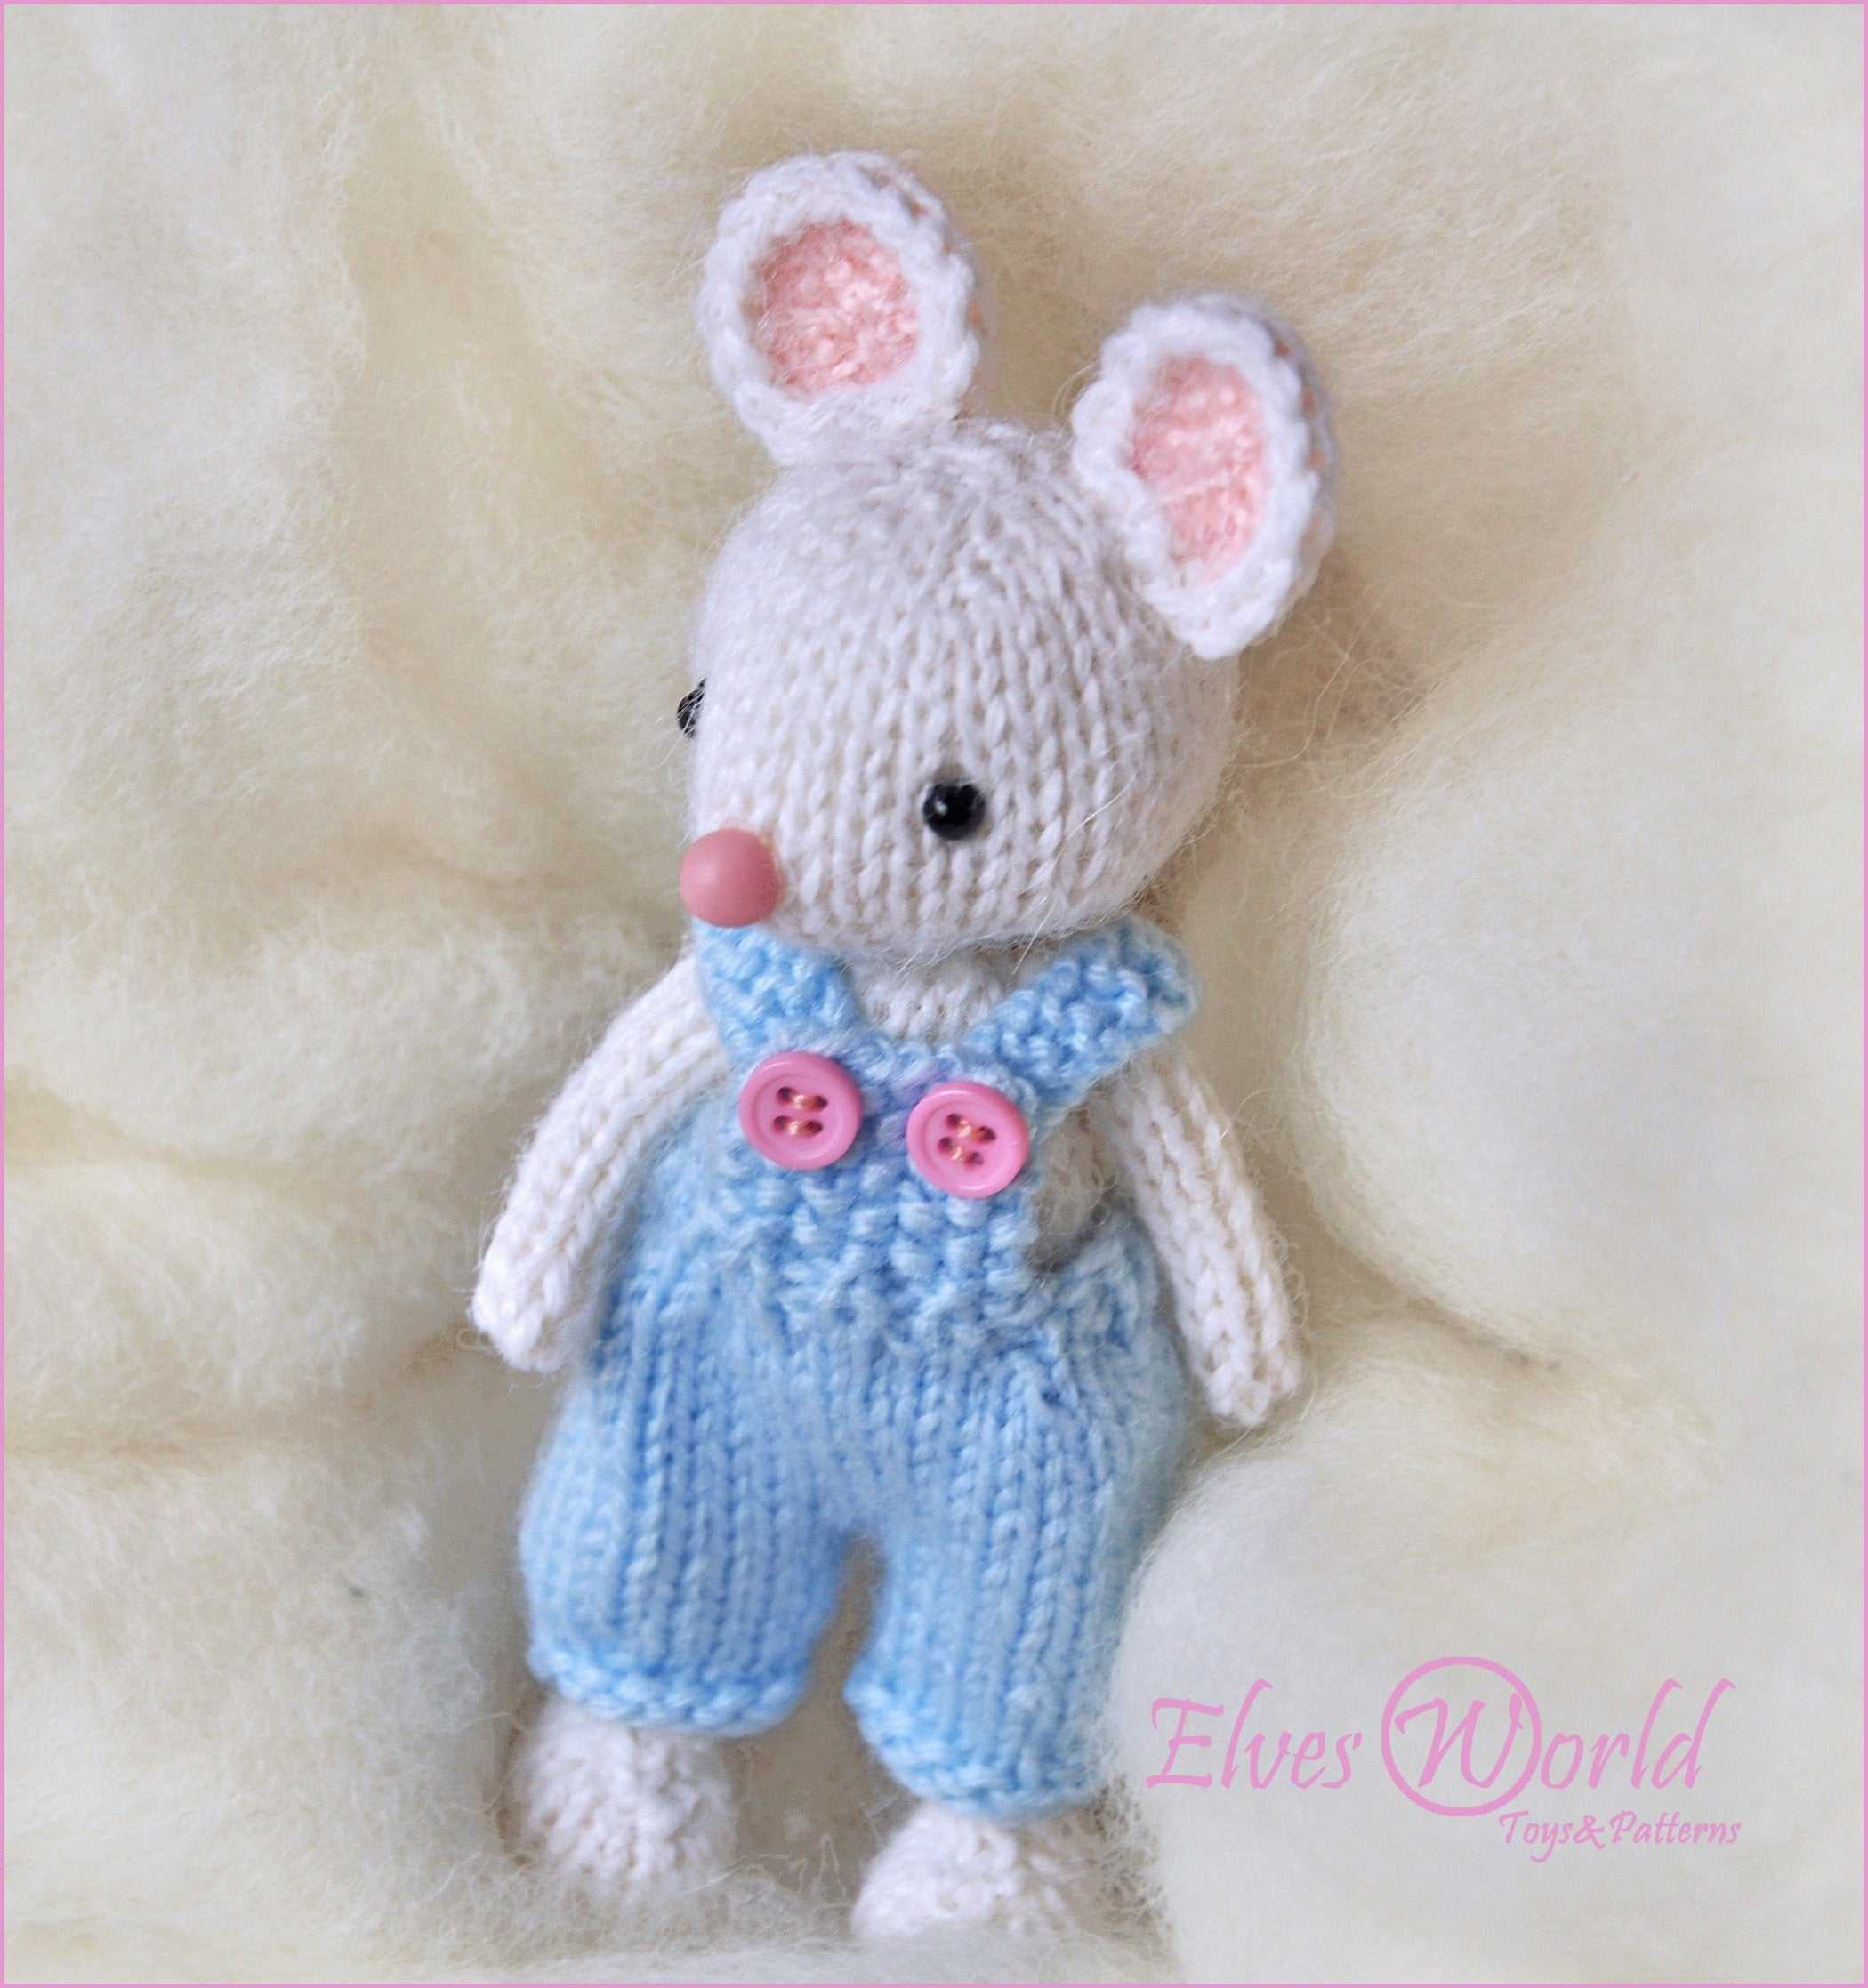 Knitting Patterns For Baby Toys Toy Mouse Knitting Pattern Pdf Knitted Animal Pattern Stuffed Toy Making Diy Toy Ba Mouse Amigurumi Pattern Pattern Ba Toy Mouse Pattern